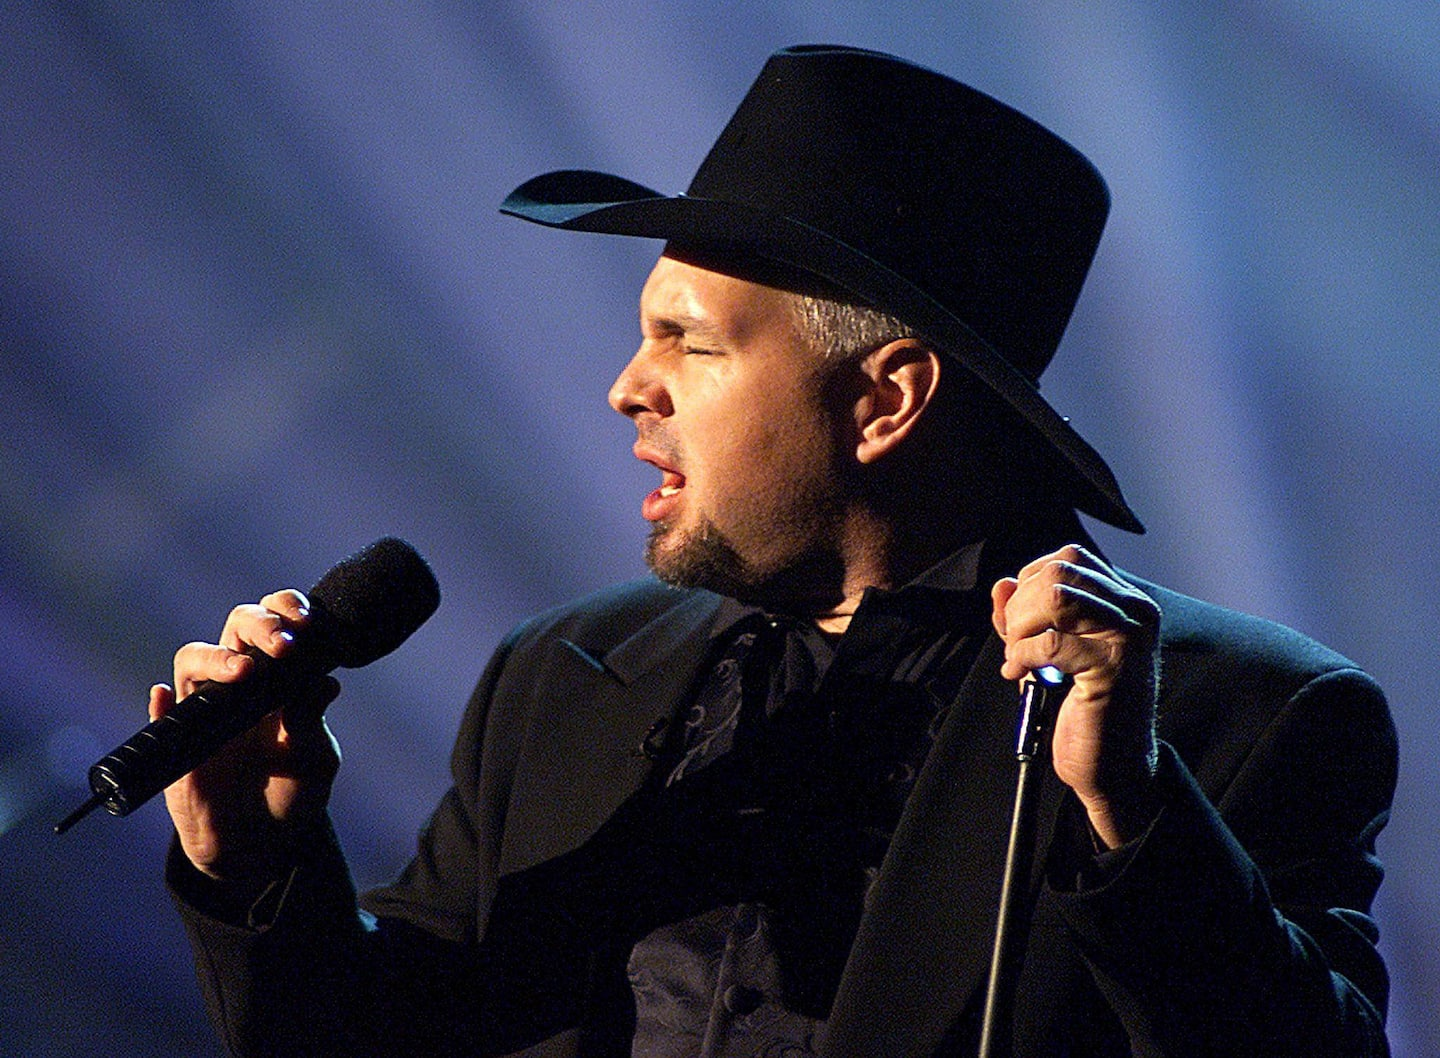 Kennedy Center Honors will stage almost a week of events featuring Garth Brooks, Debbie Allen, Joan Baez and more